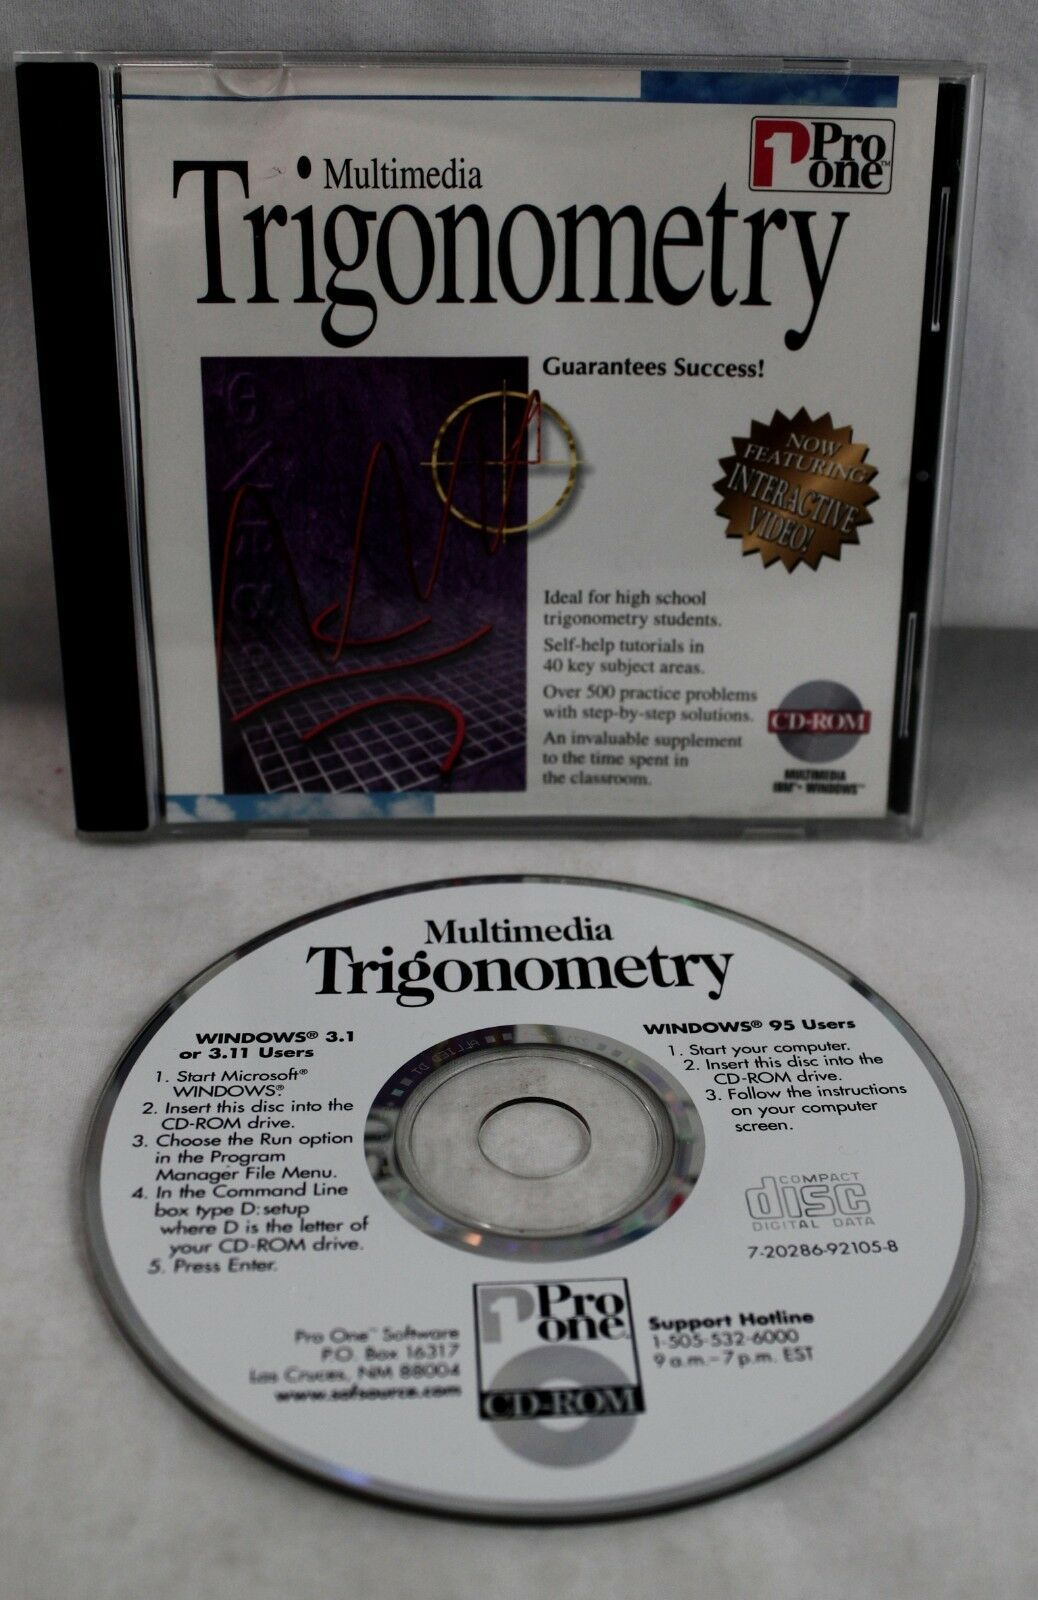 Primary image for Multimedia Trigonometry CDROM Win95 and 3.1, Pro One Software